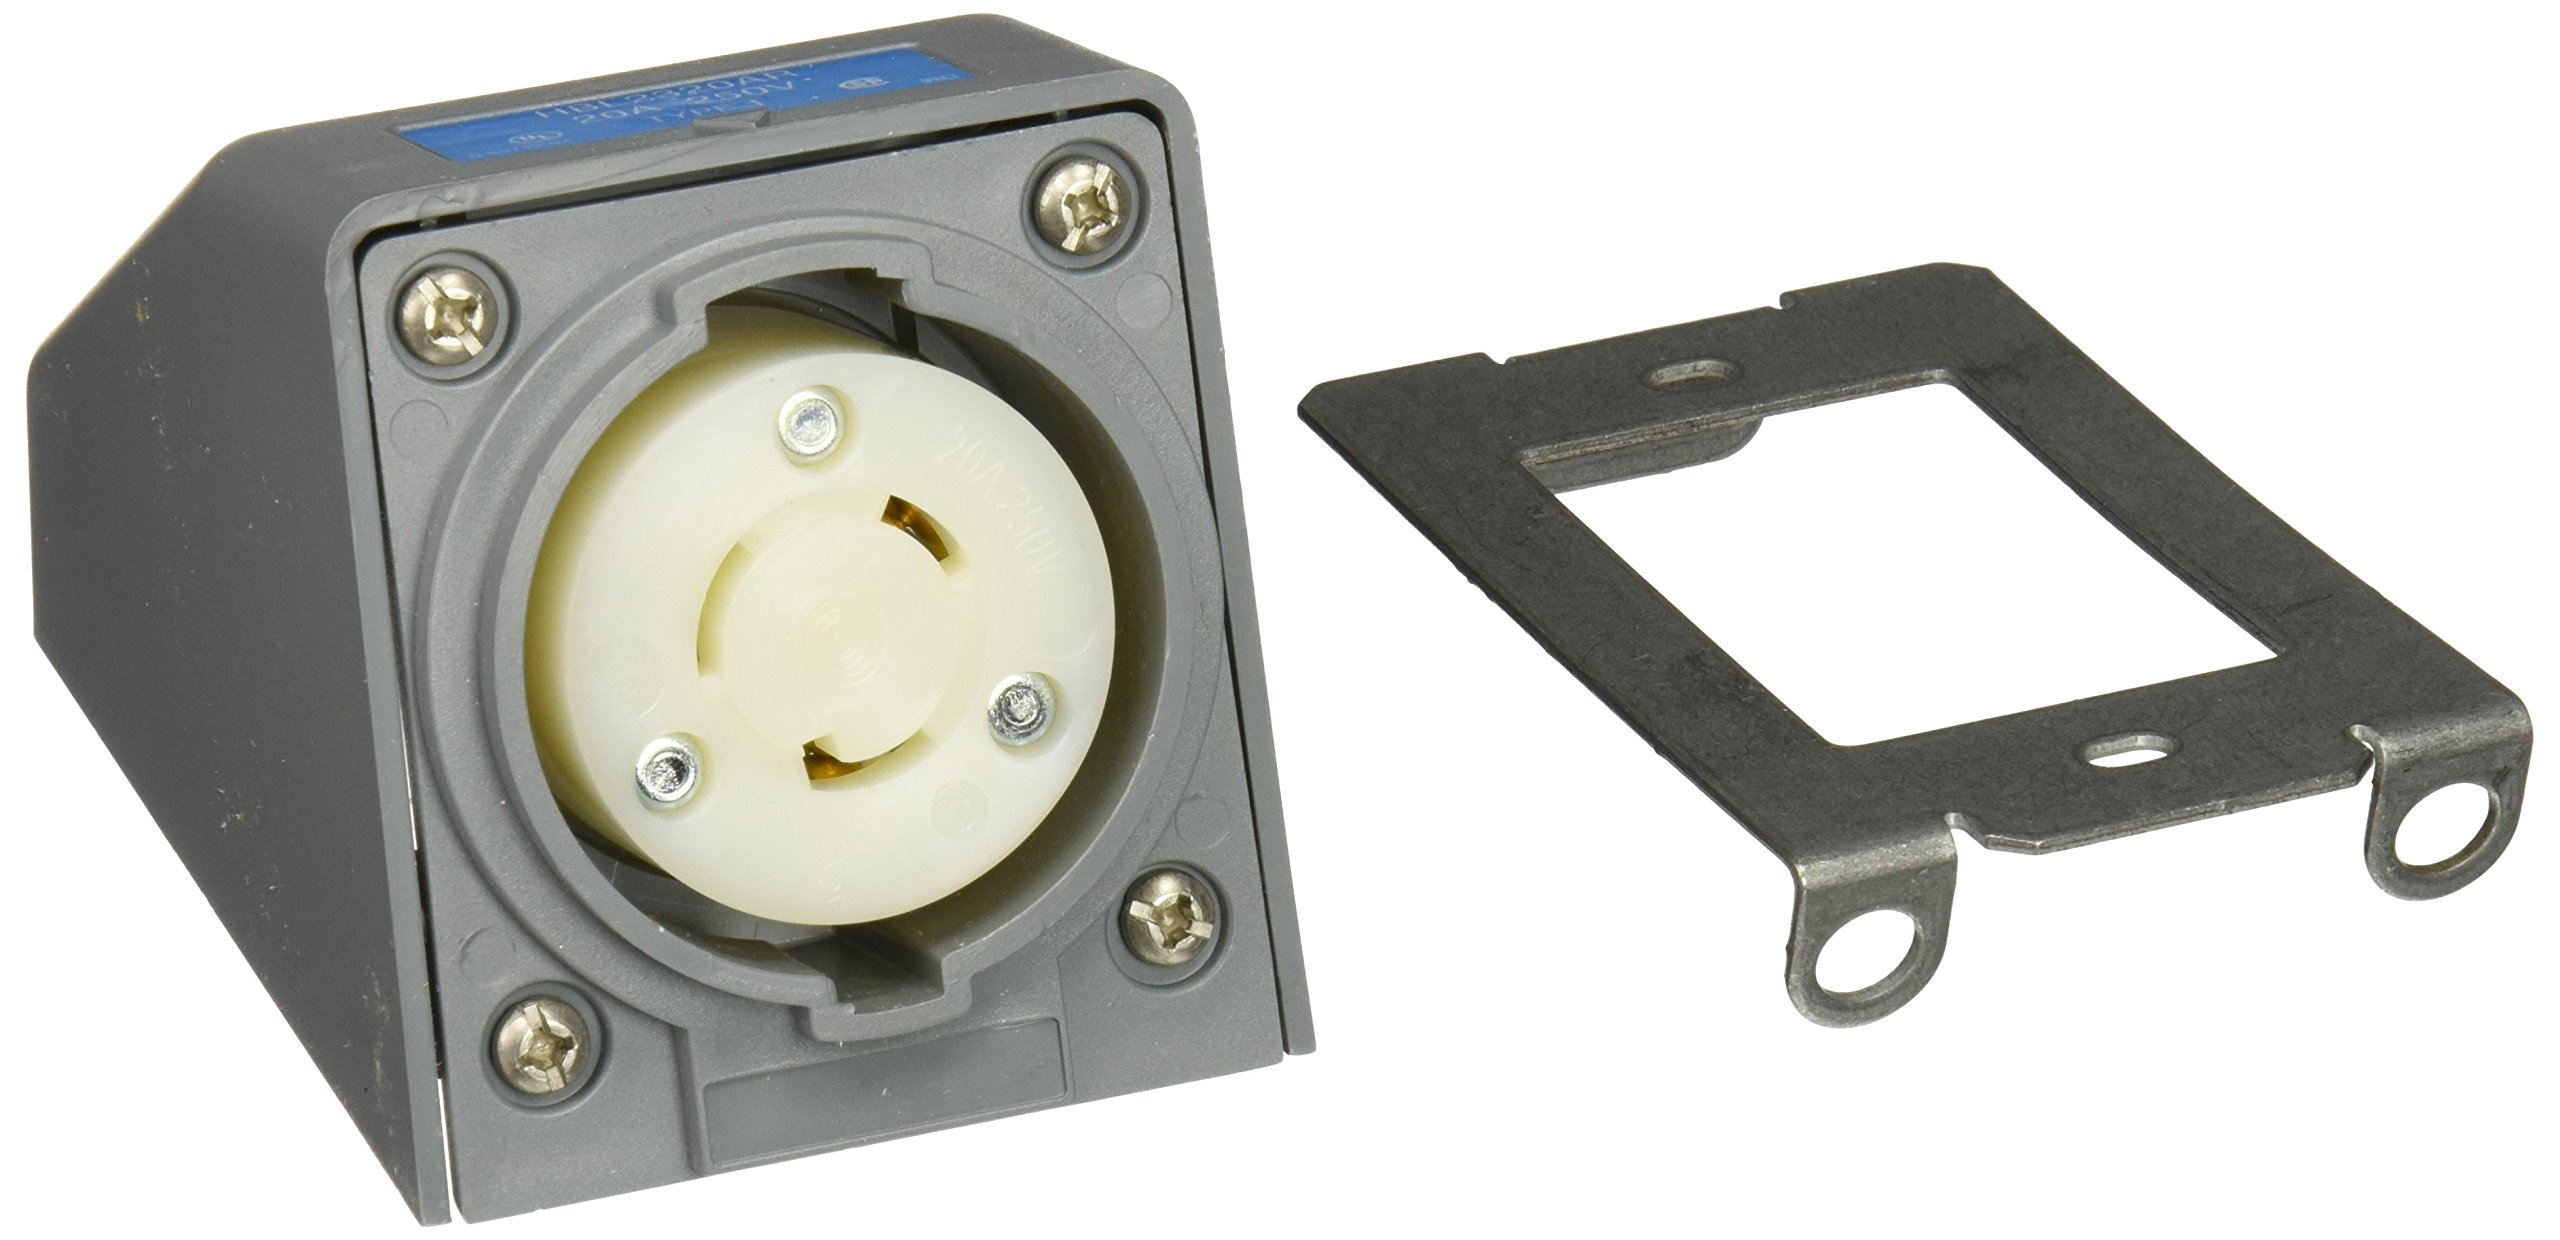 Hubbell HBL2320AR Locking Safety Shroud Receptacle, Angled Surface Mount, L6-20R, Gray